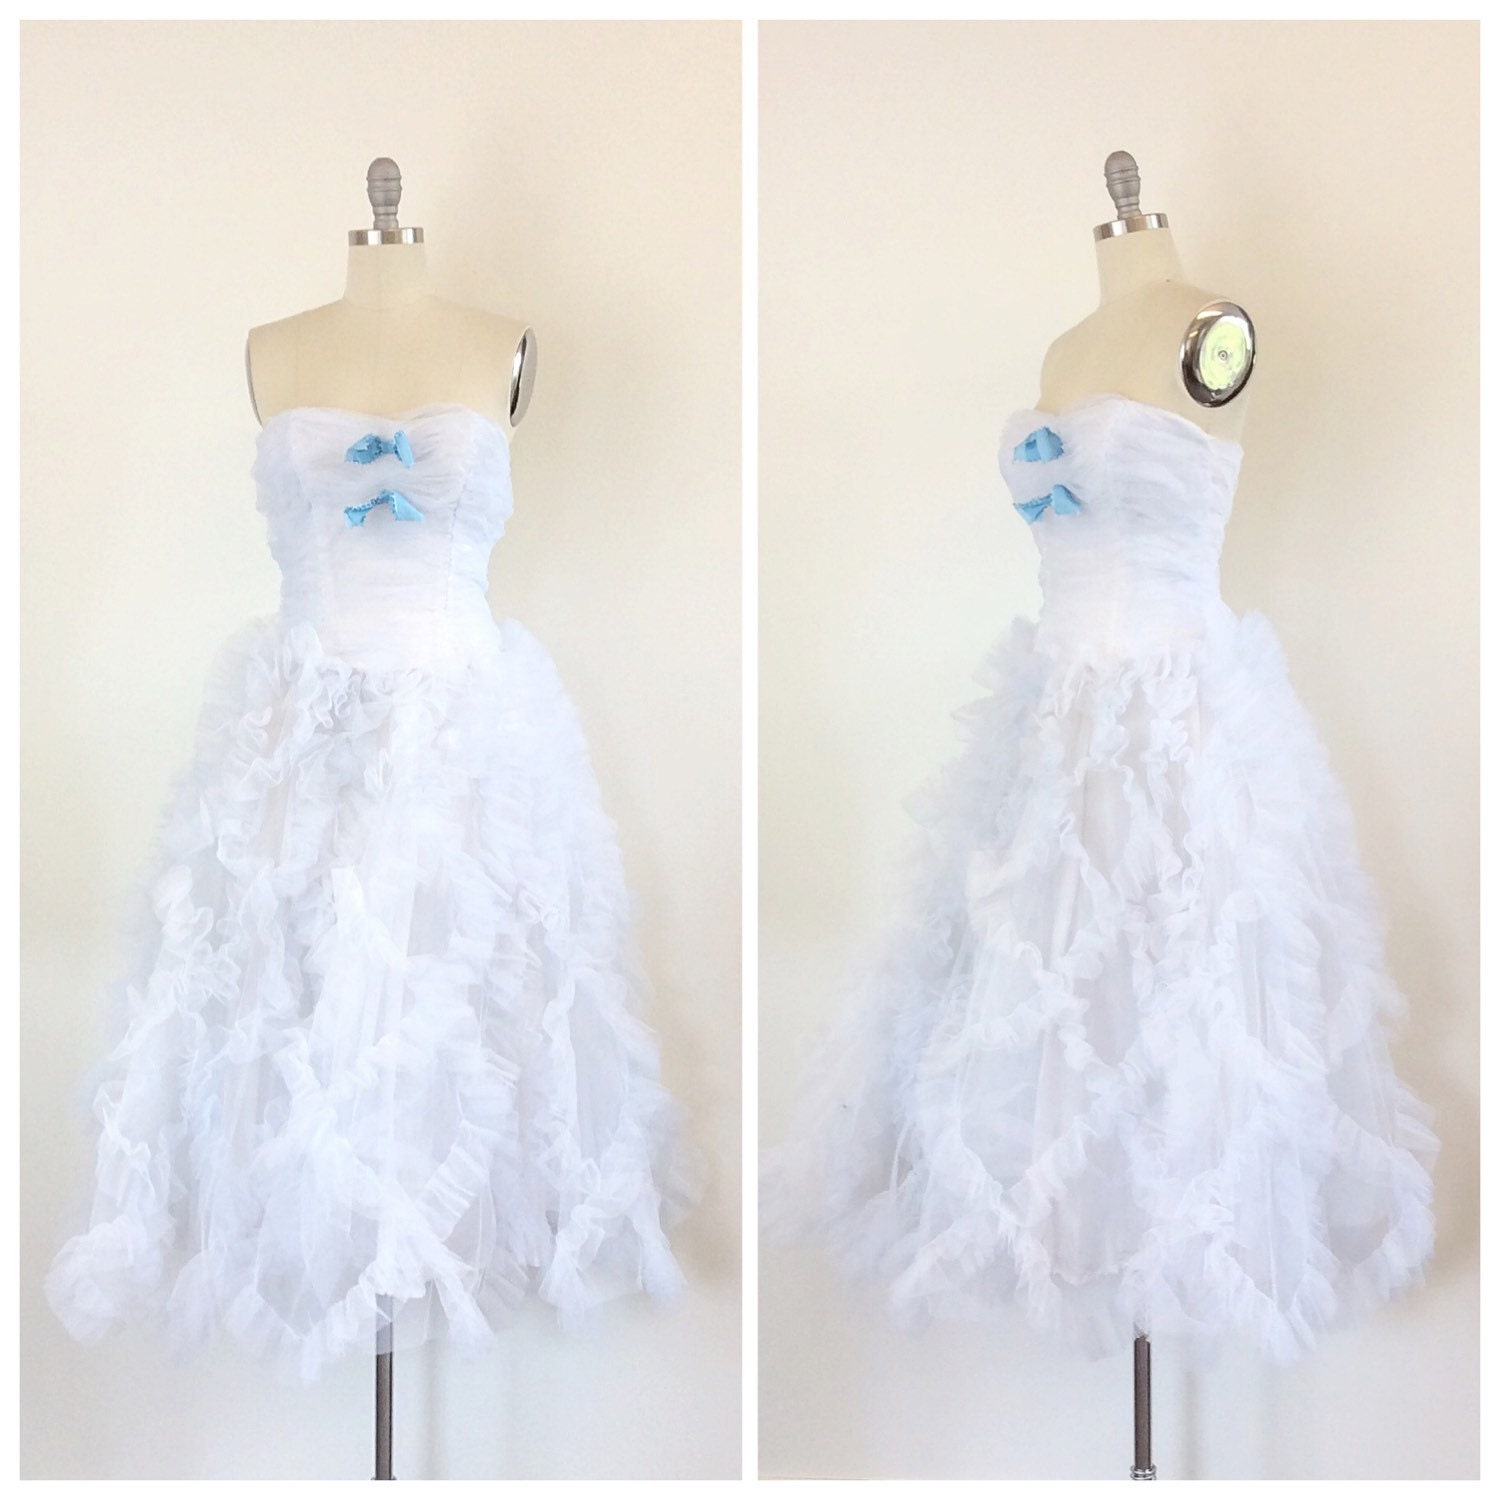 9cba174a855 50s Light Blue / White Ruffled Prom Dress - 1950s Vintage Strapless Cupcake  Party Dress- Small - Size 4